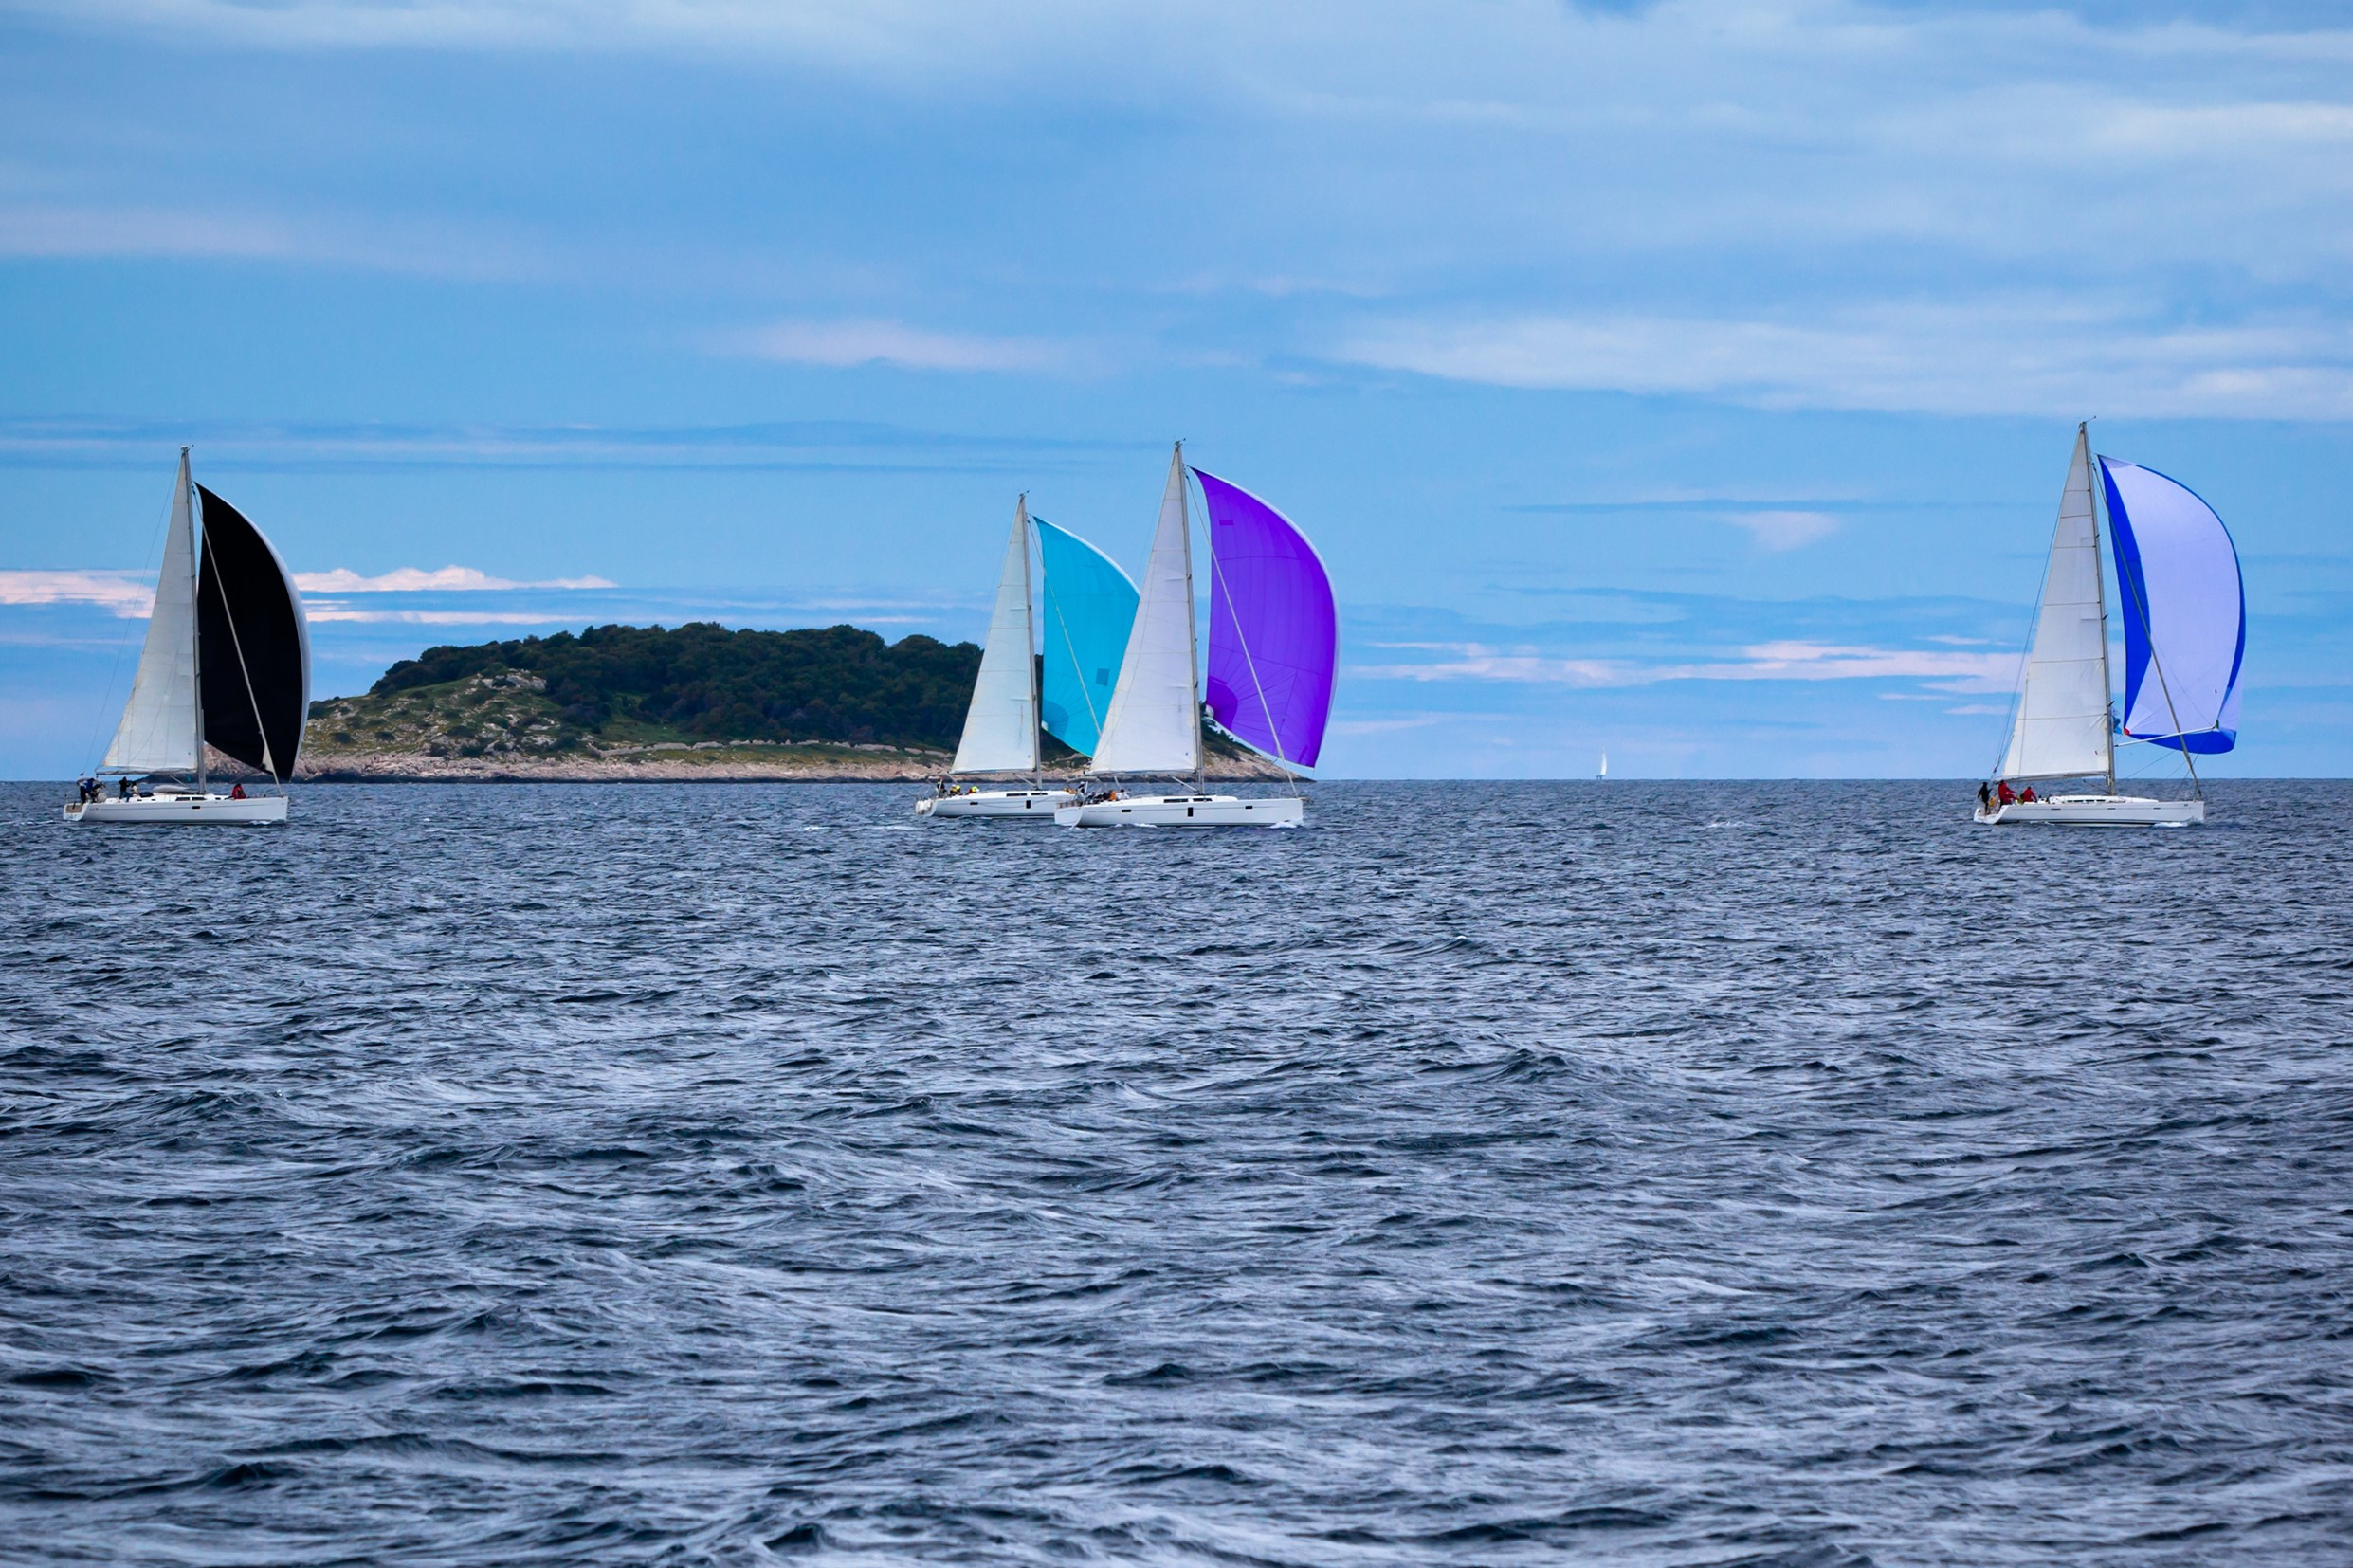 Yacht Regatta at the Adriatic Sea in windy weather. Horizontal shot